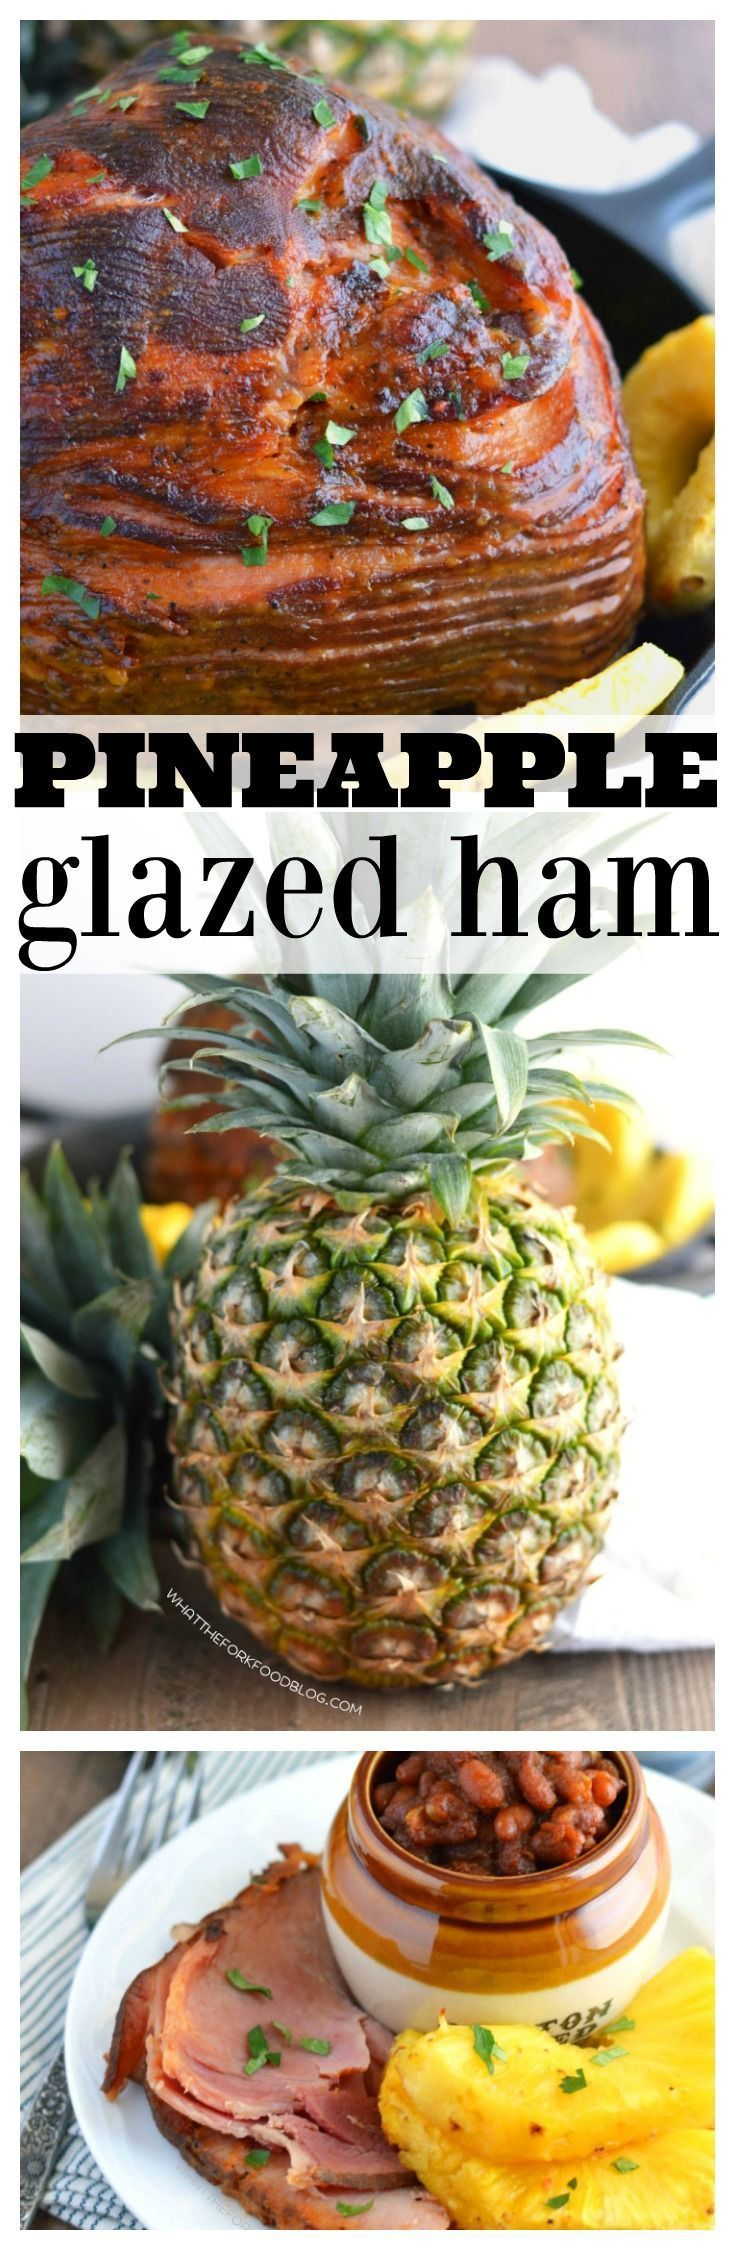 Pineapple Glazed Ham (gluten free and dairy free) - fresh pineapple is the star of this easy baked ham!